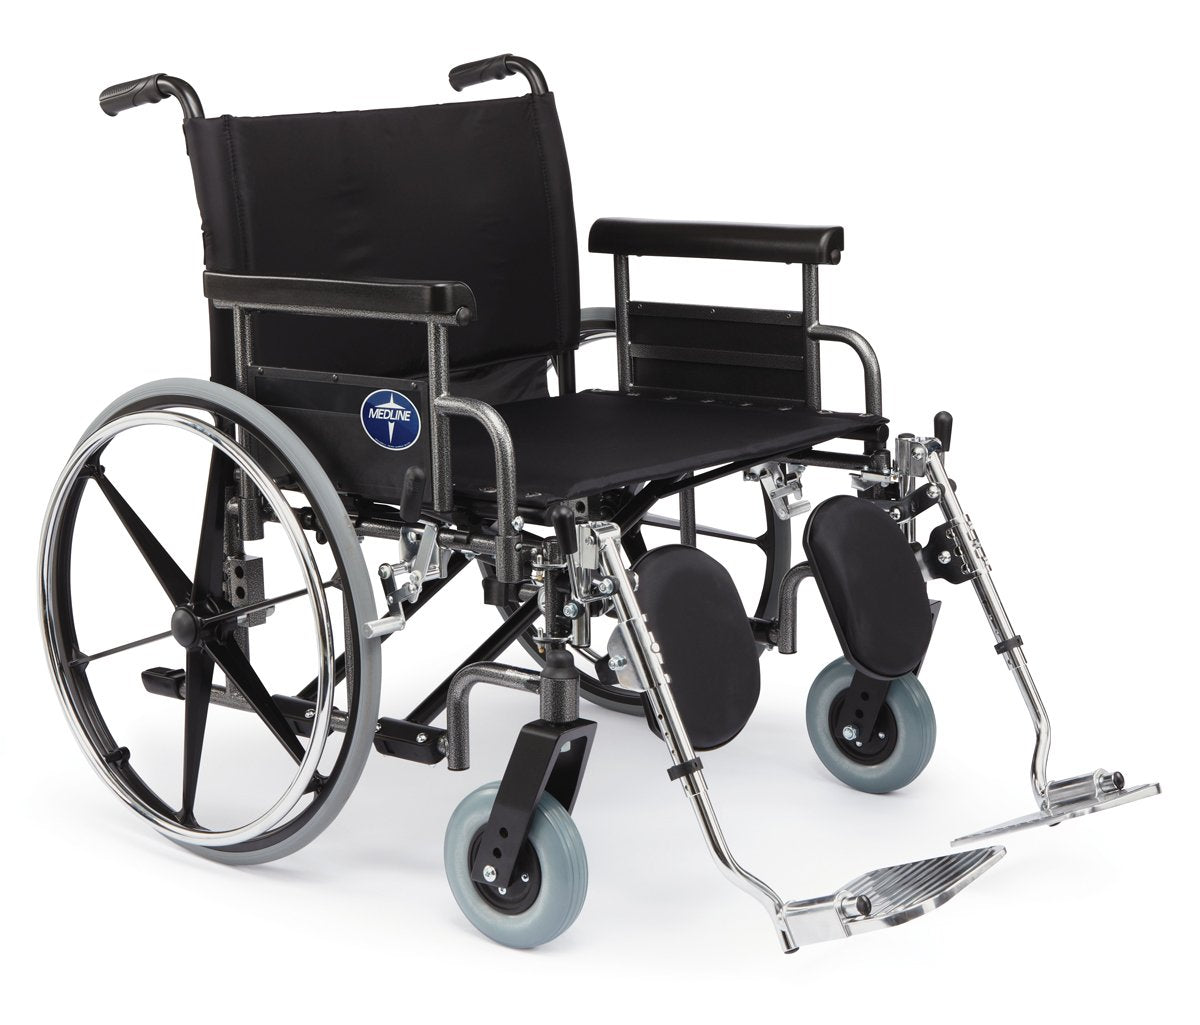 WIDE HEAVY DUTY STANDARD WHEELCHAIR